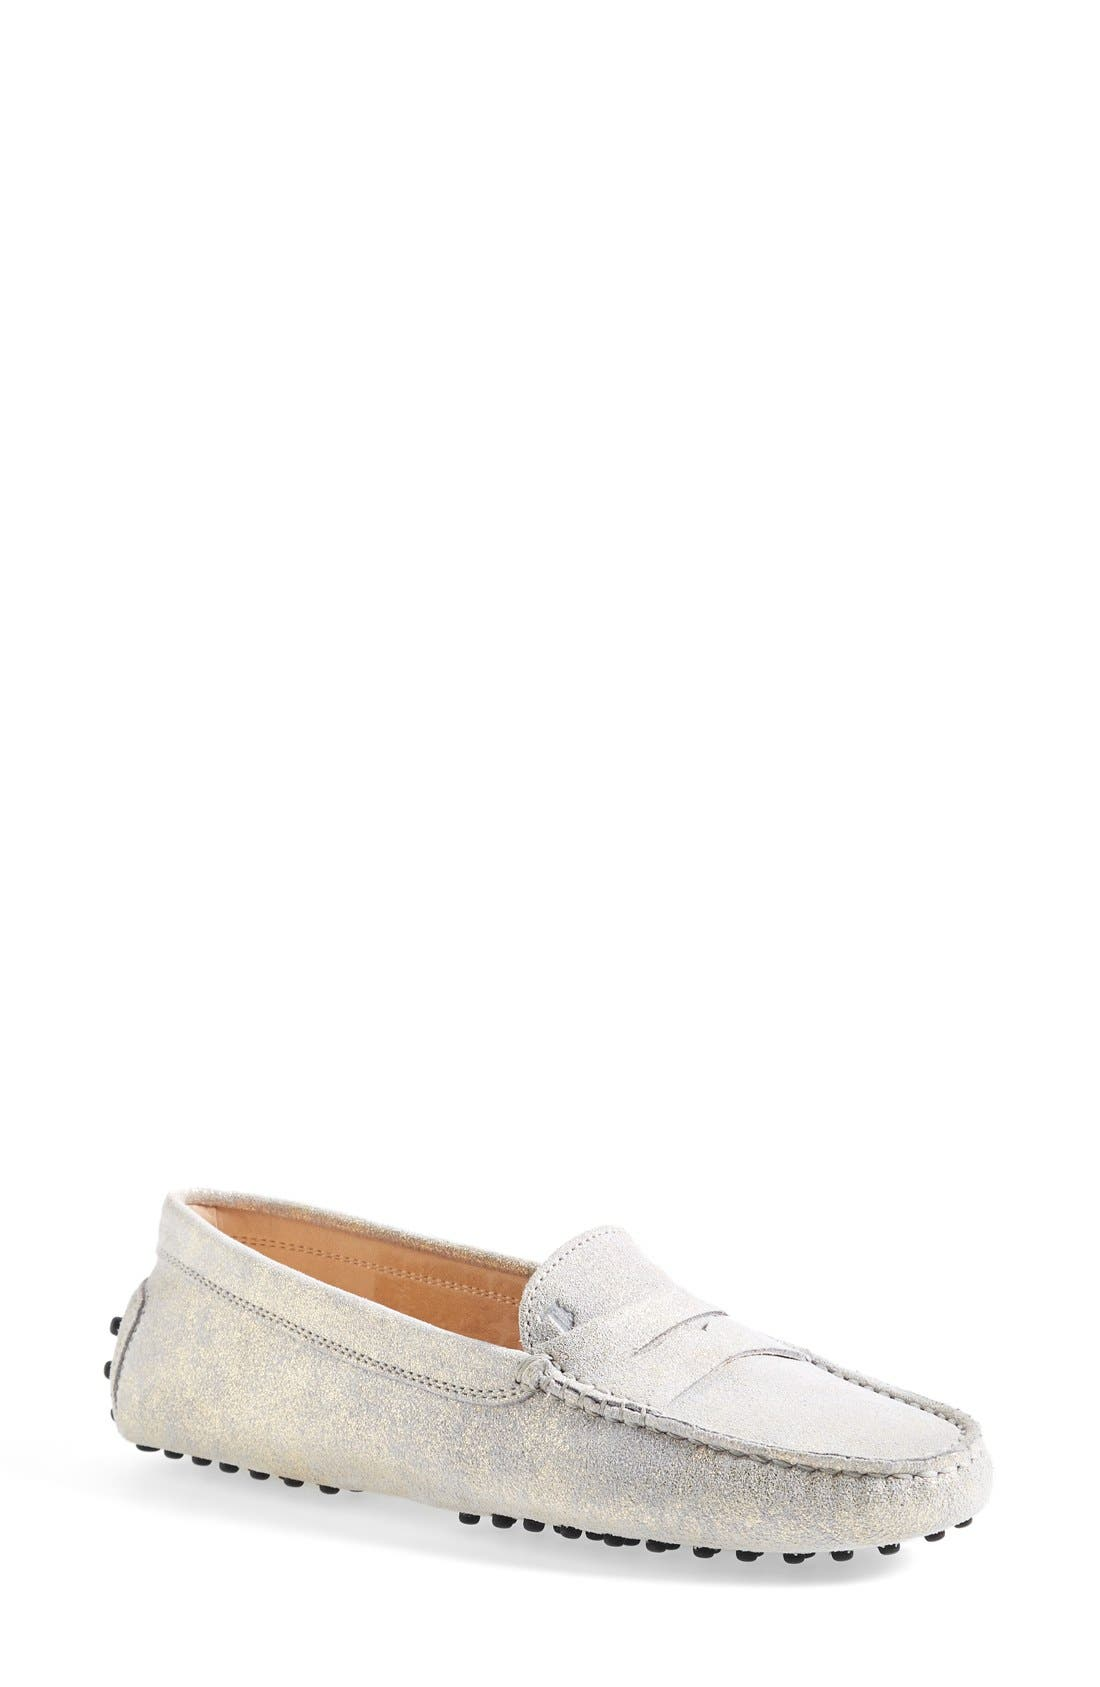 Alternate Image 1 Selected - Tod's 'Gommini' Metallic Suede Penny Loafer (Women)